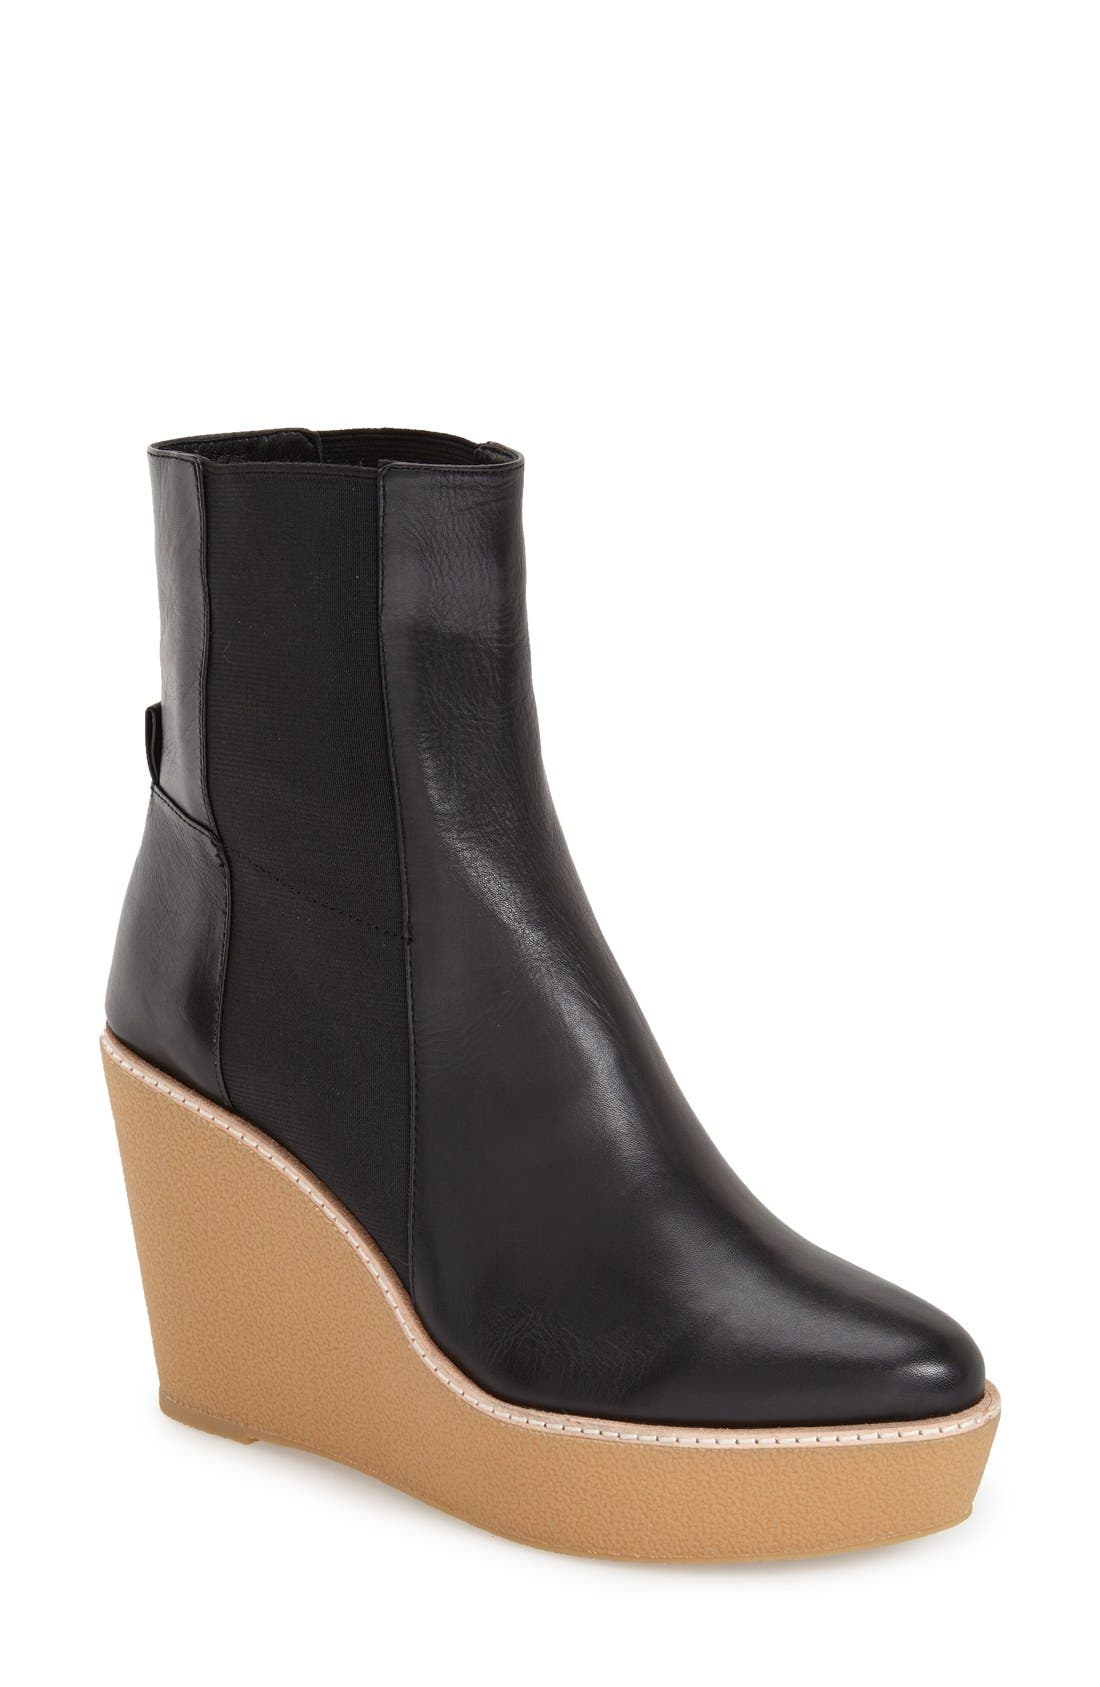 Main Image - Derek Lam 10 Crosby 'Sandy' Almond Toe Wedge Bootie (Women)